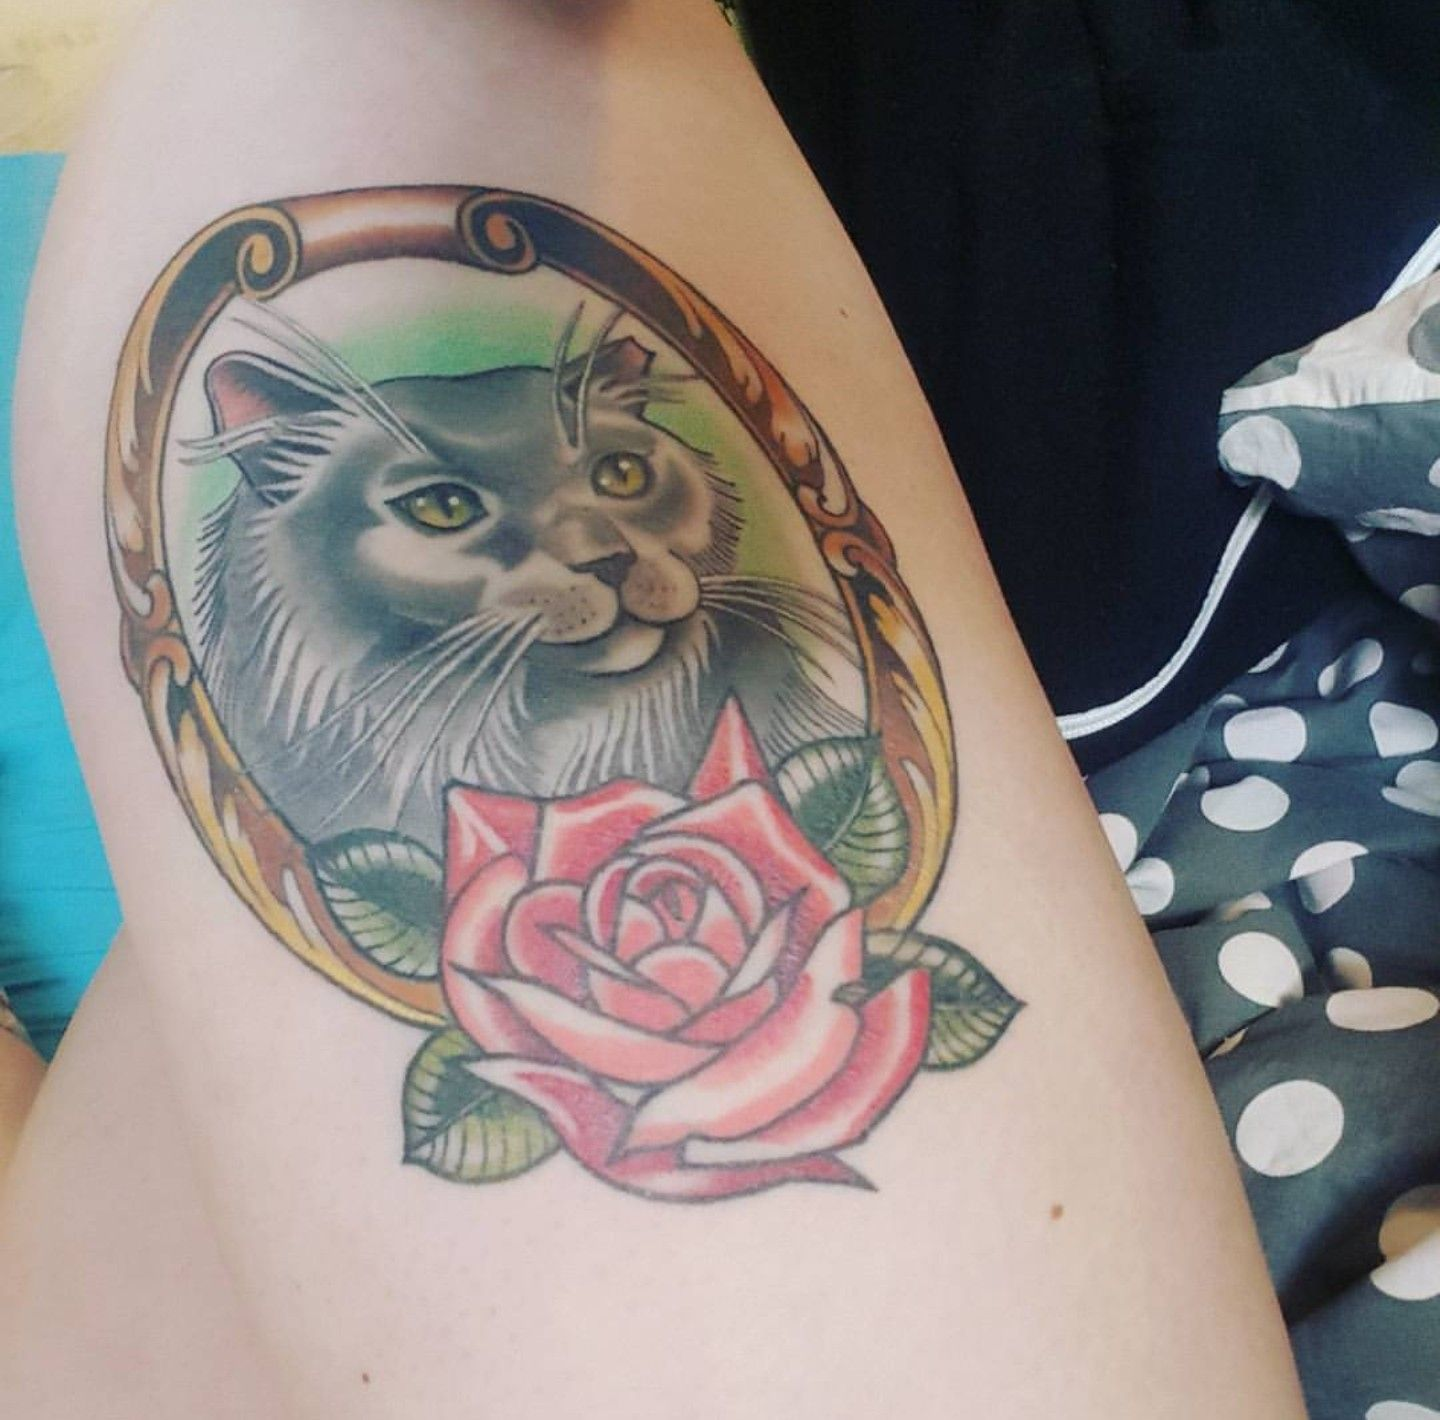 27+ Stunning Cat tattoos with roses ideas